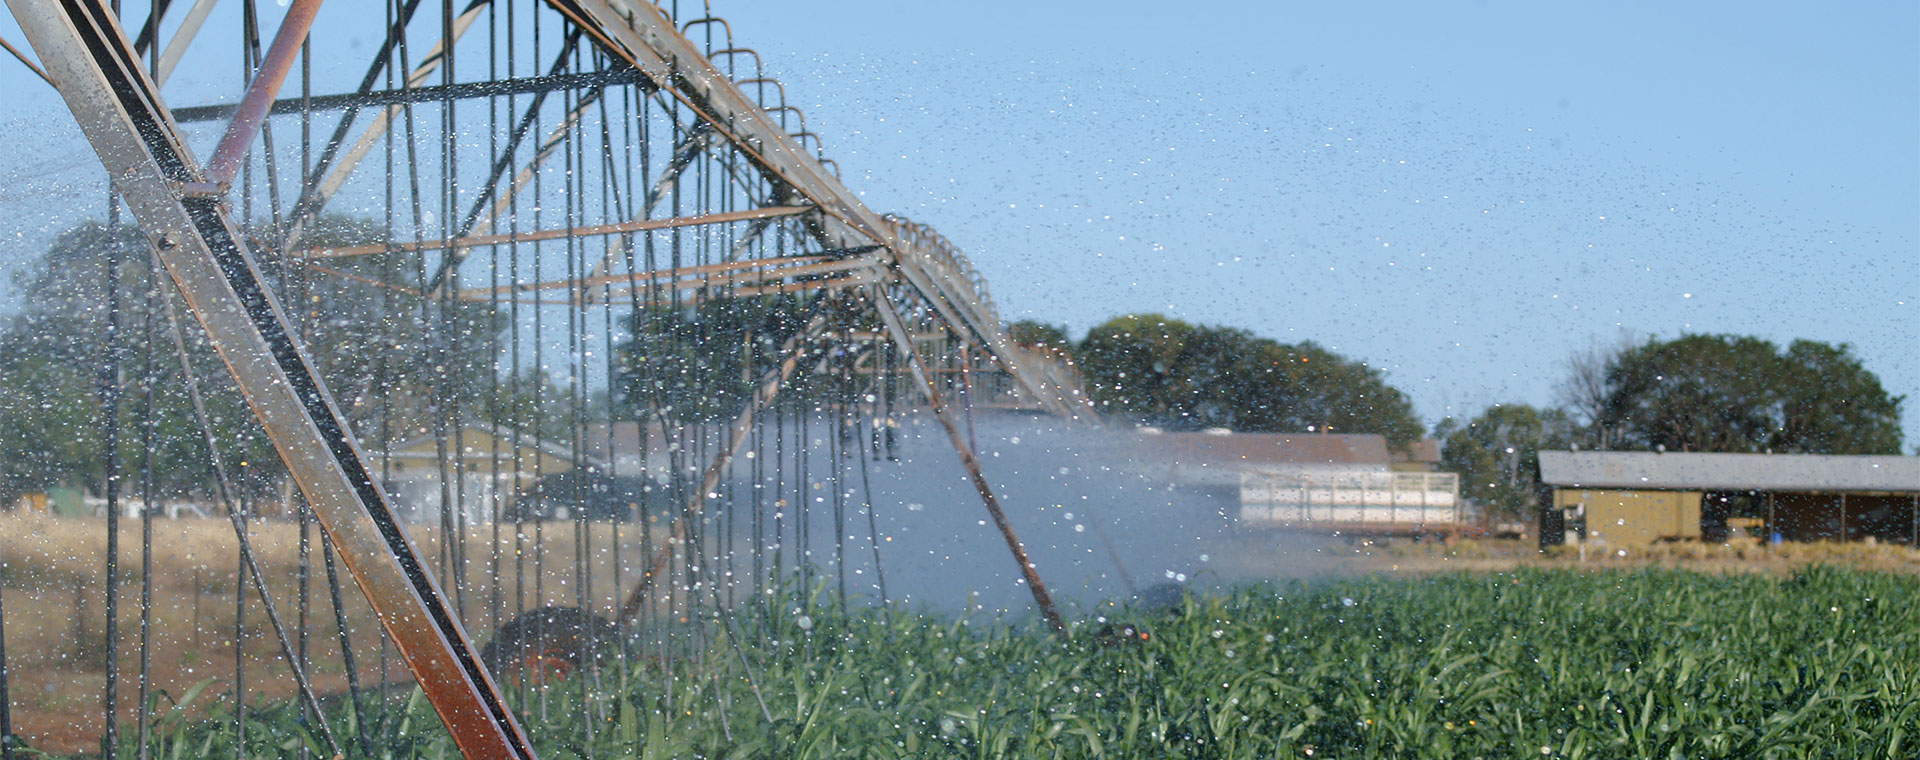 Crop being irrigated